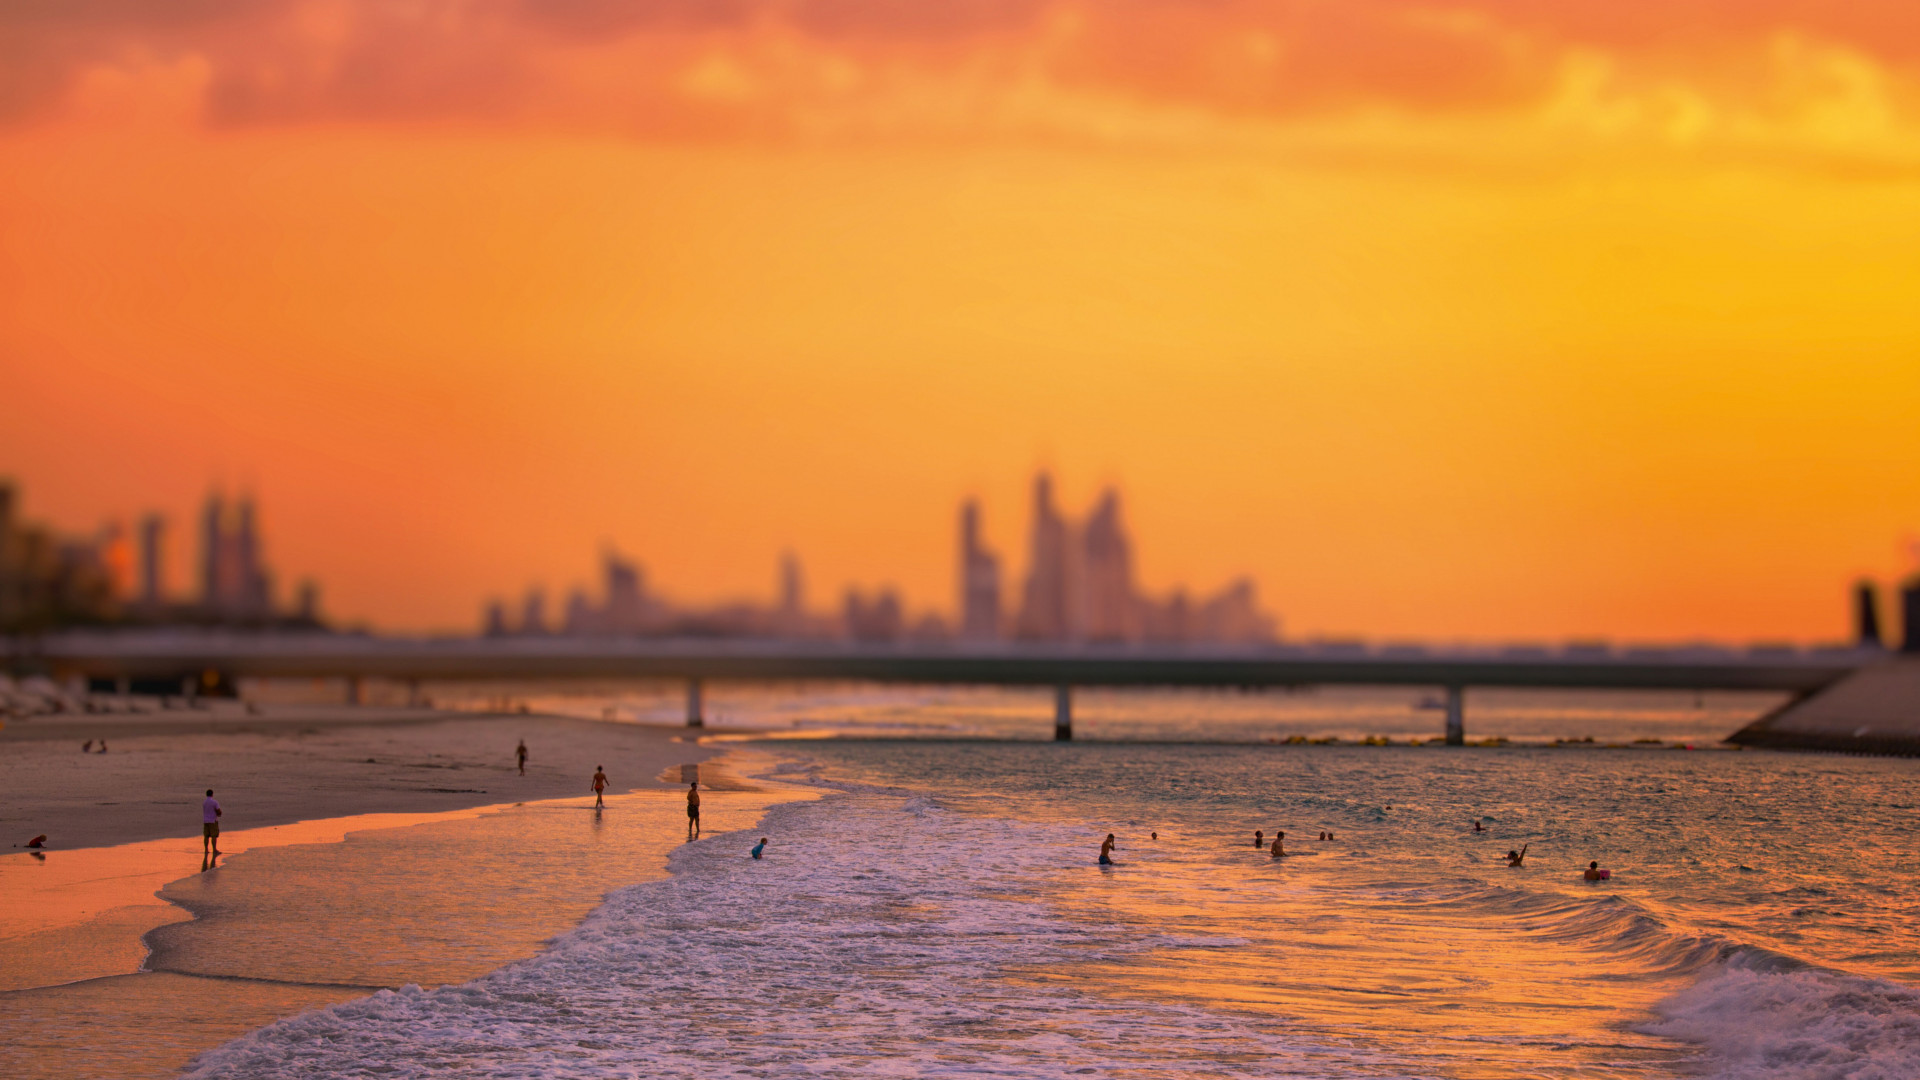 Dubai beach at sunset with skyline in background